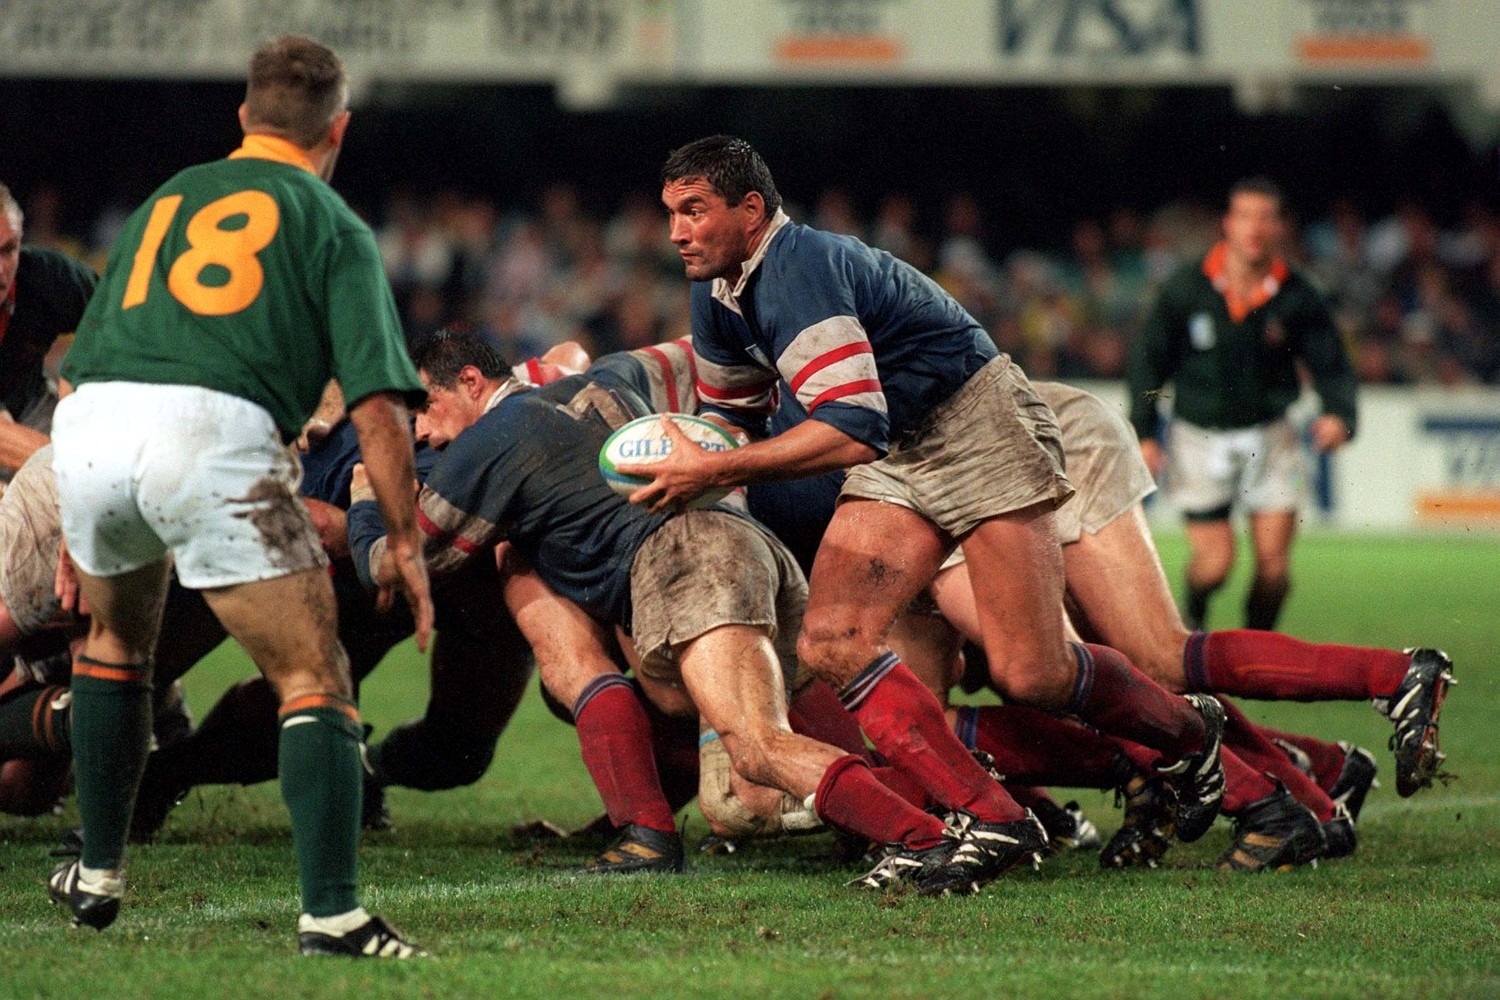 Marc Cecillon of France attacking with the ball in hand as France takes on South Africa in the Rugby World Cup.